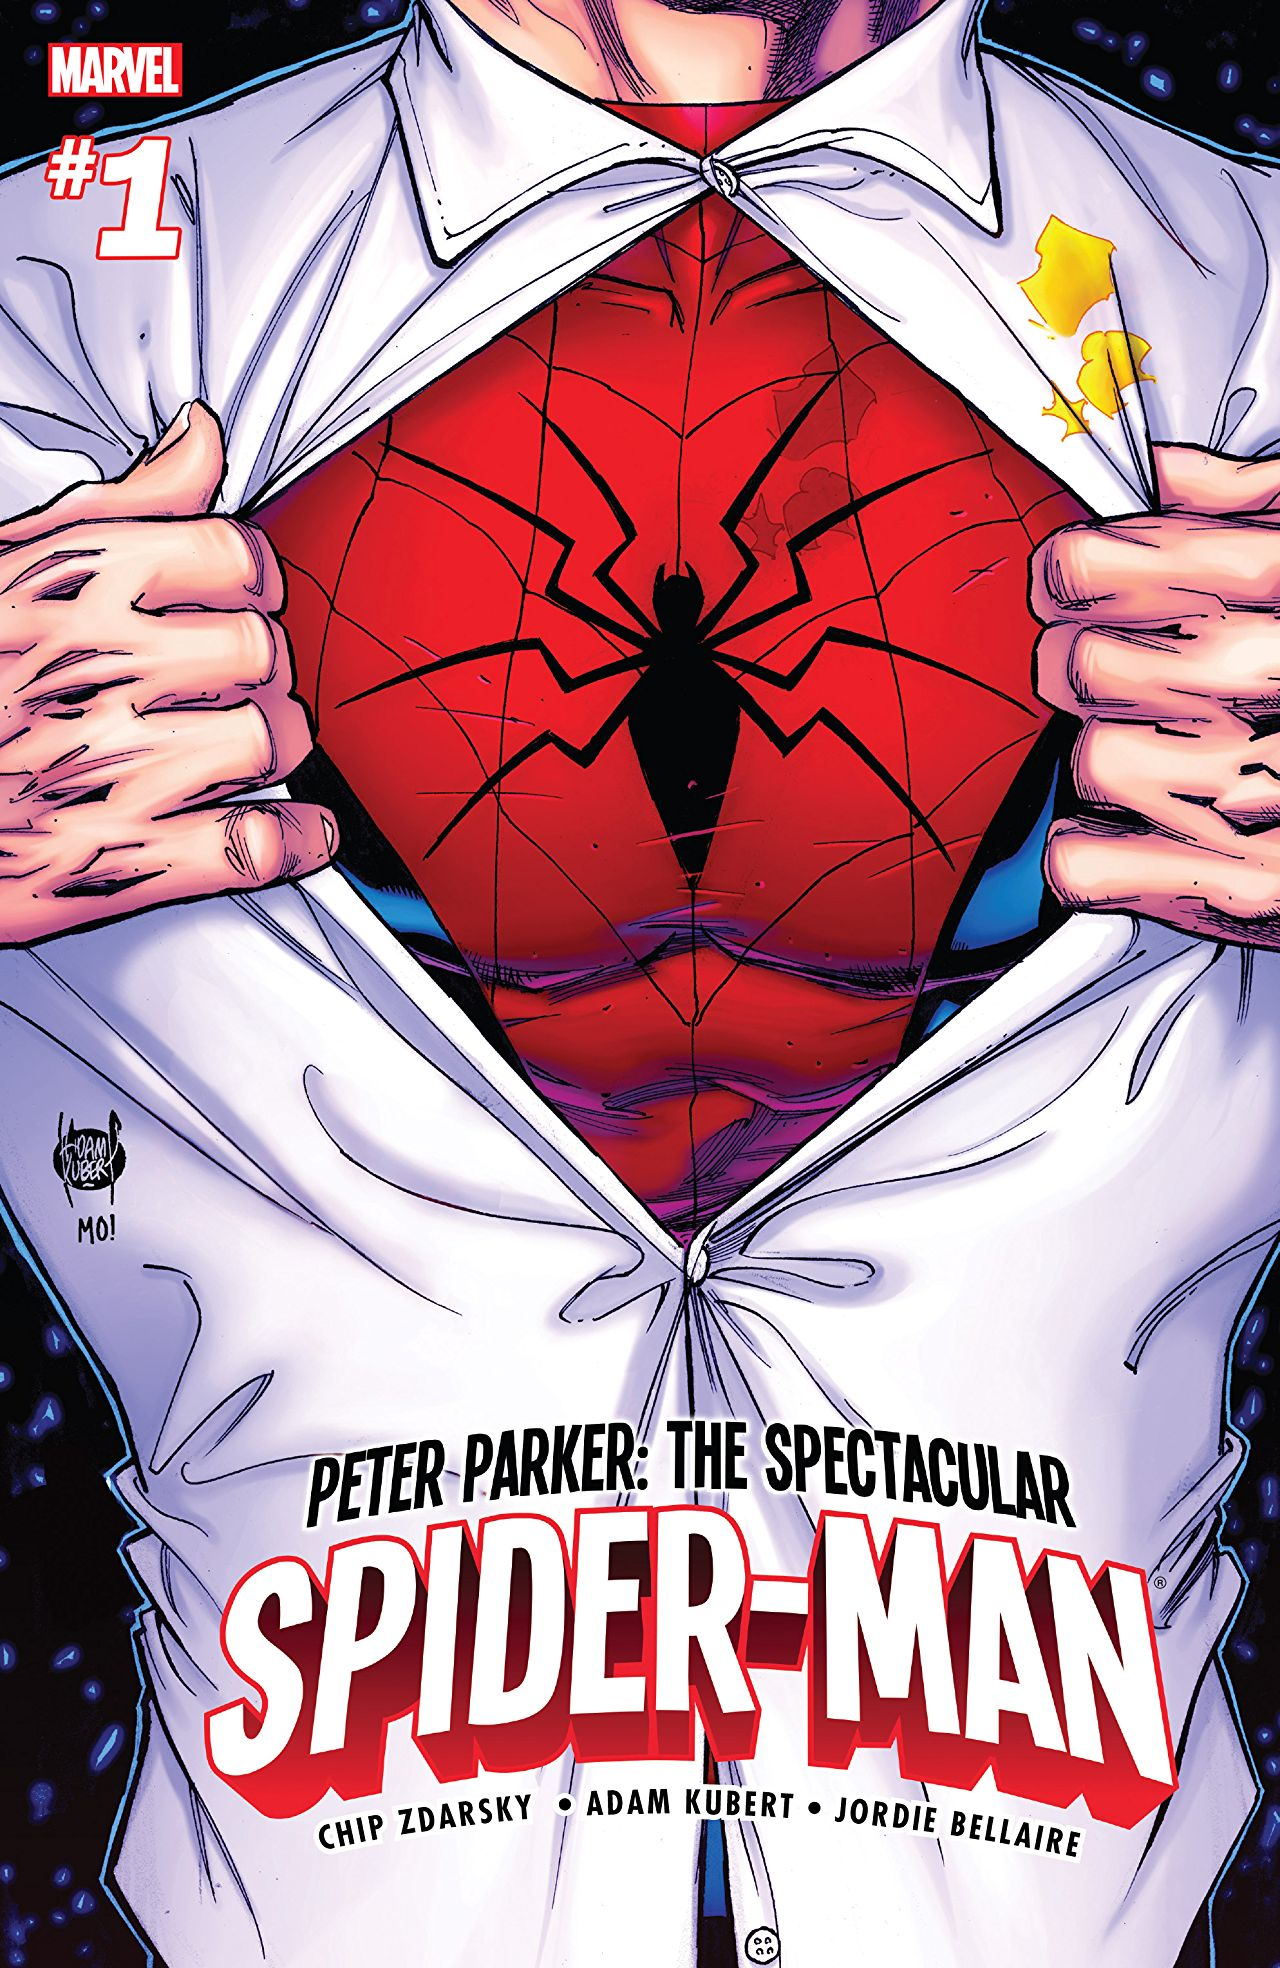 Peter Parker - The Spectacular Spider-Man 1 - When I was a kid, my parents died.